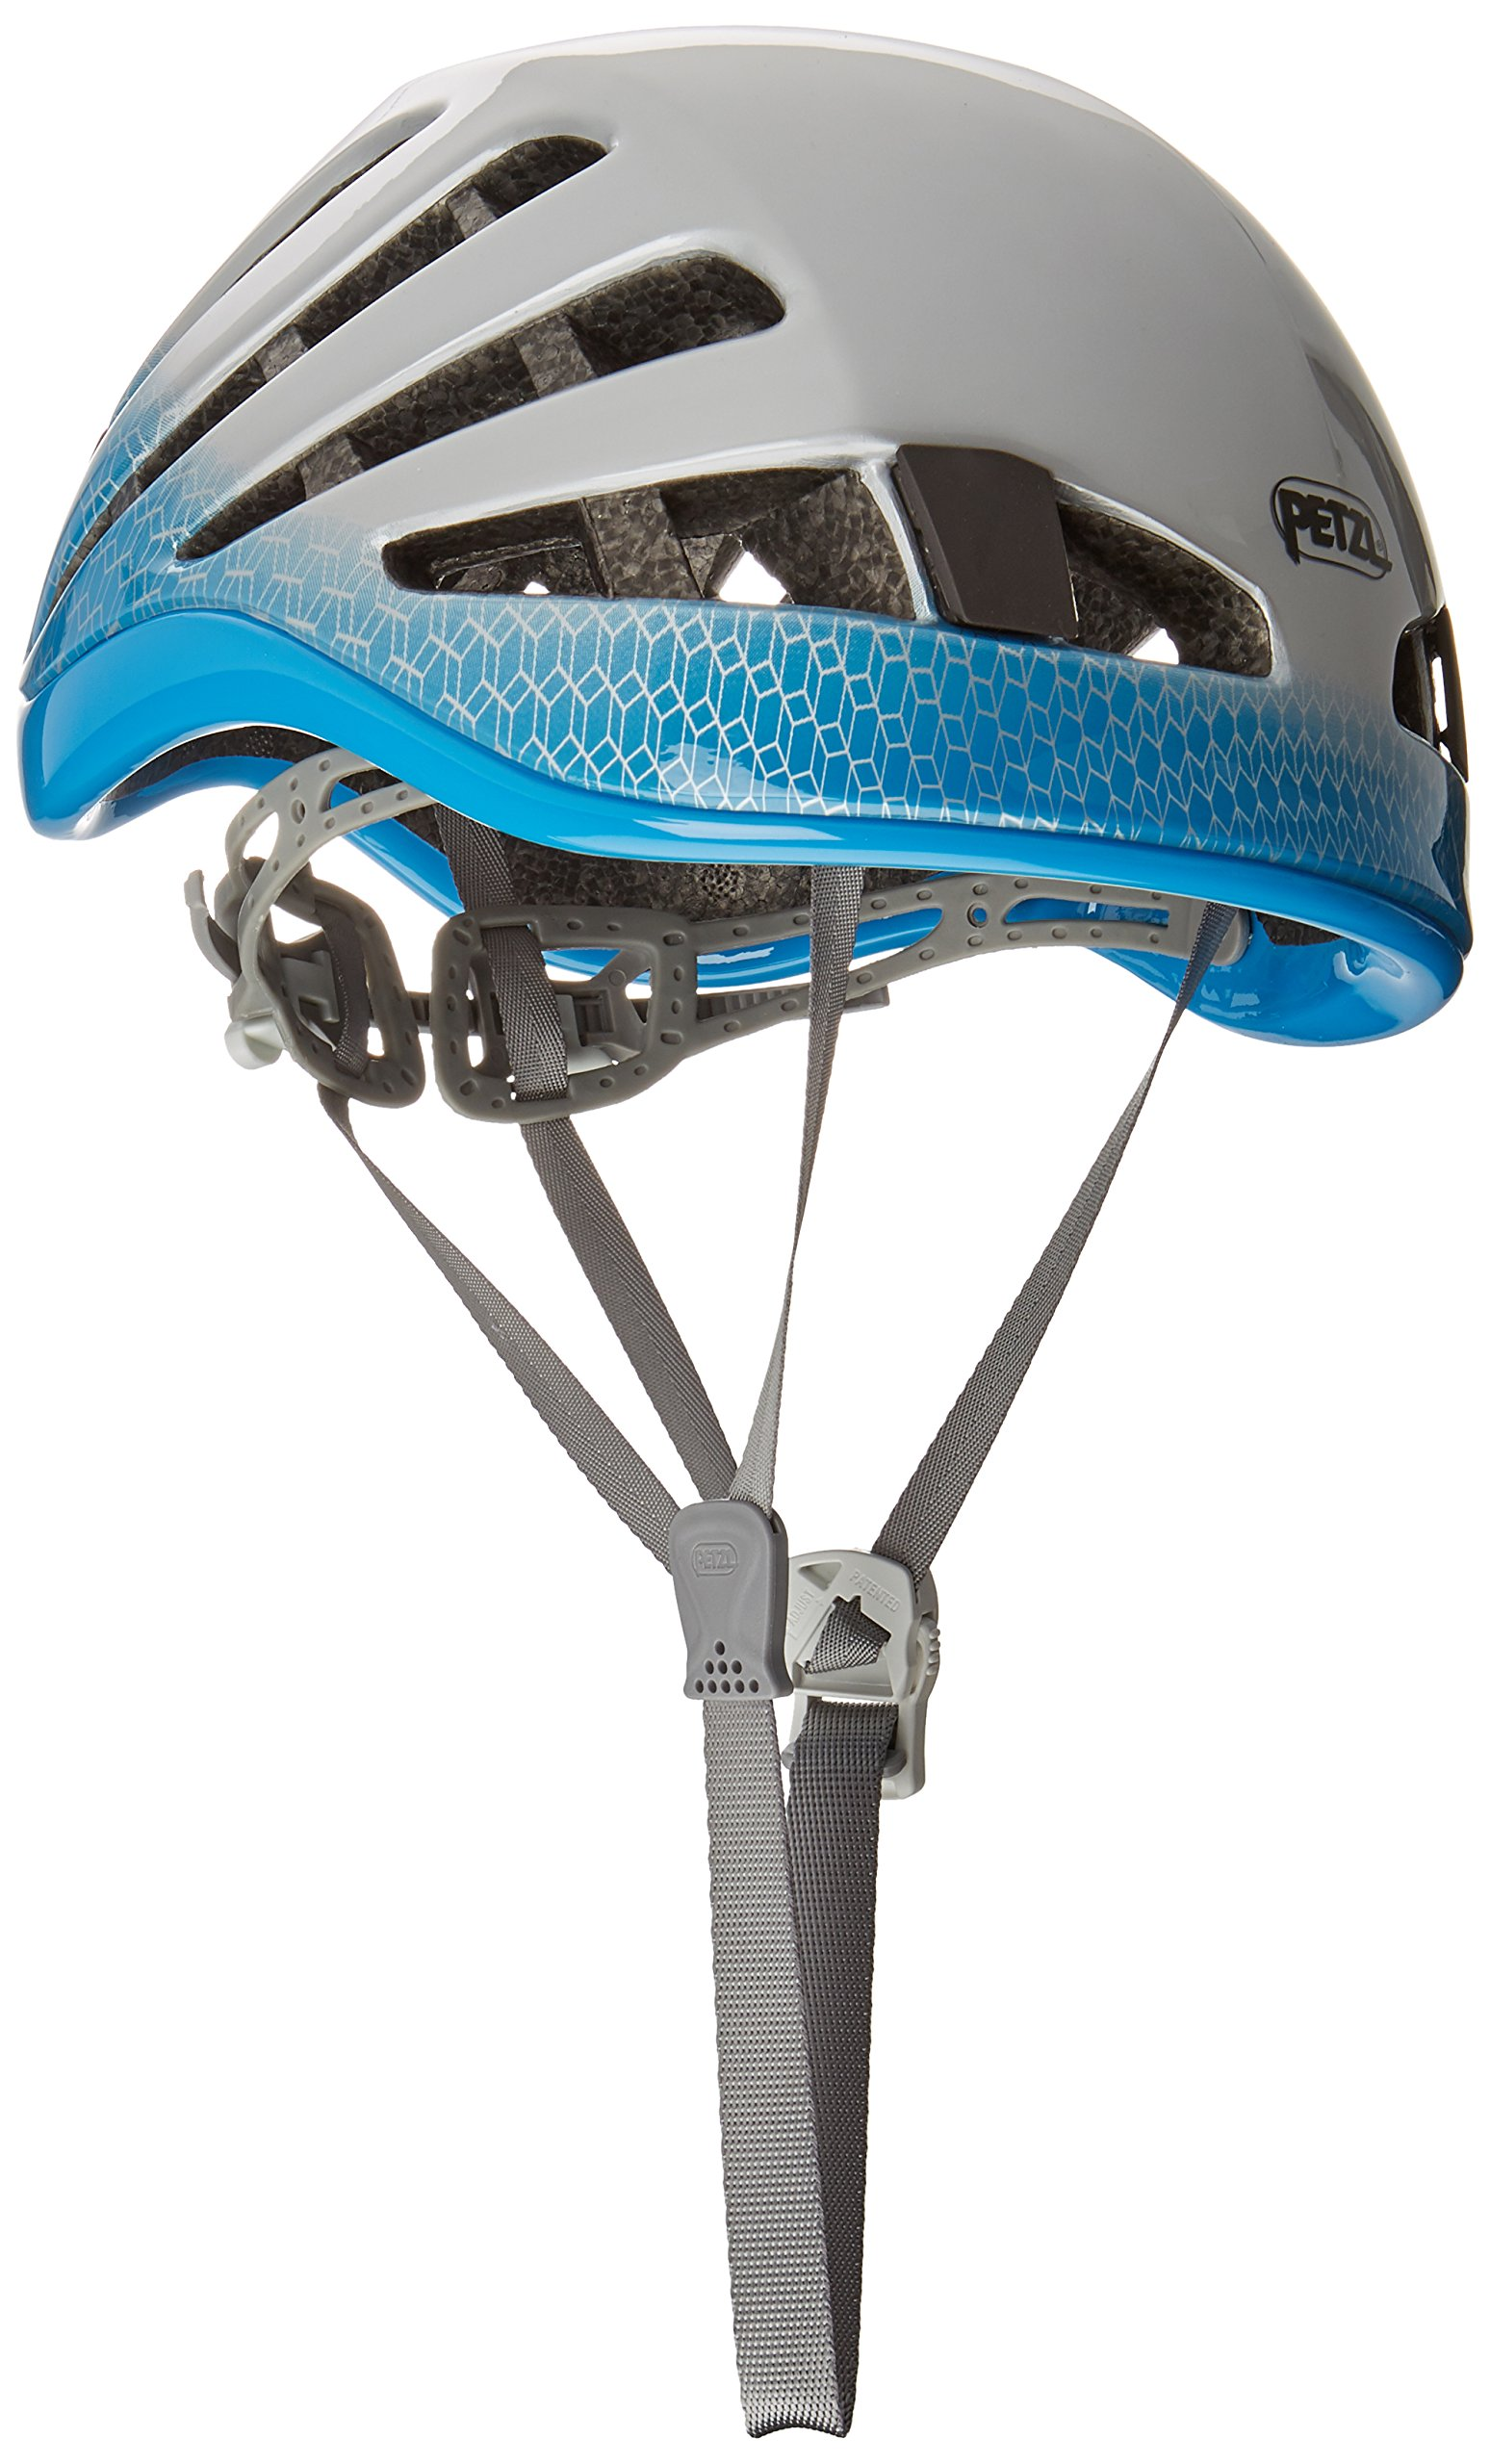 PETZL - Meteor, Lightweight and Versatile Helmet, Size 1, Blue by PETZL